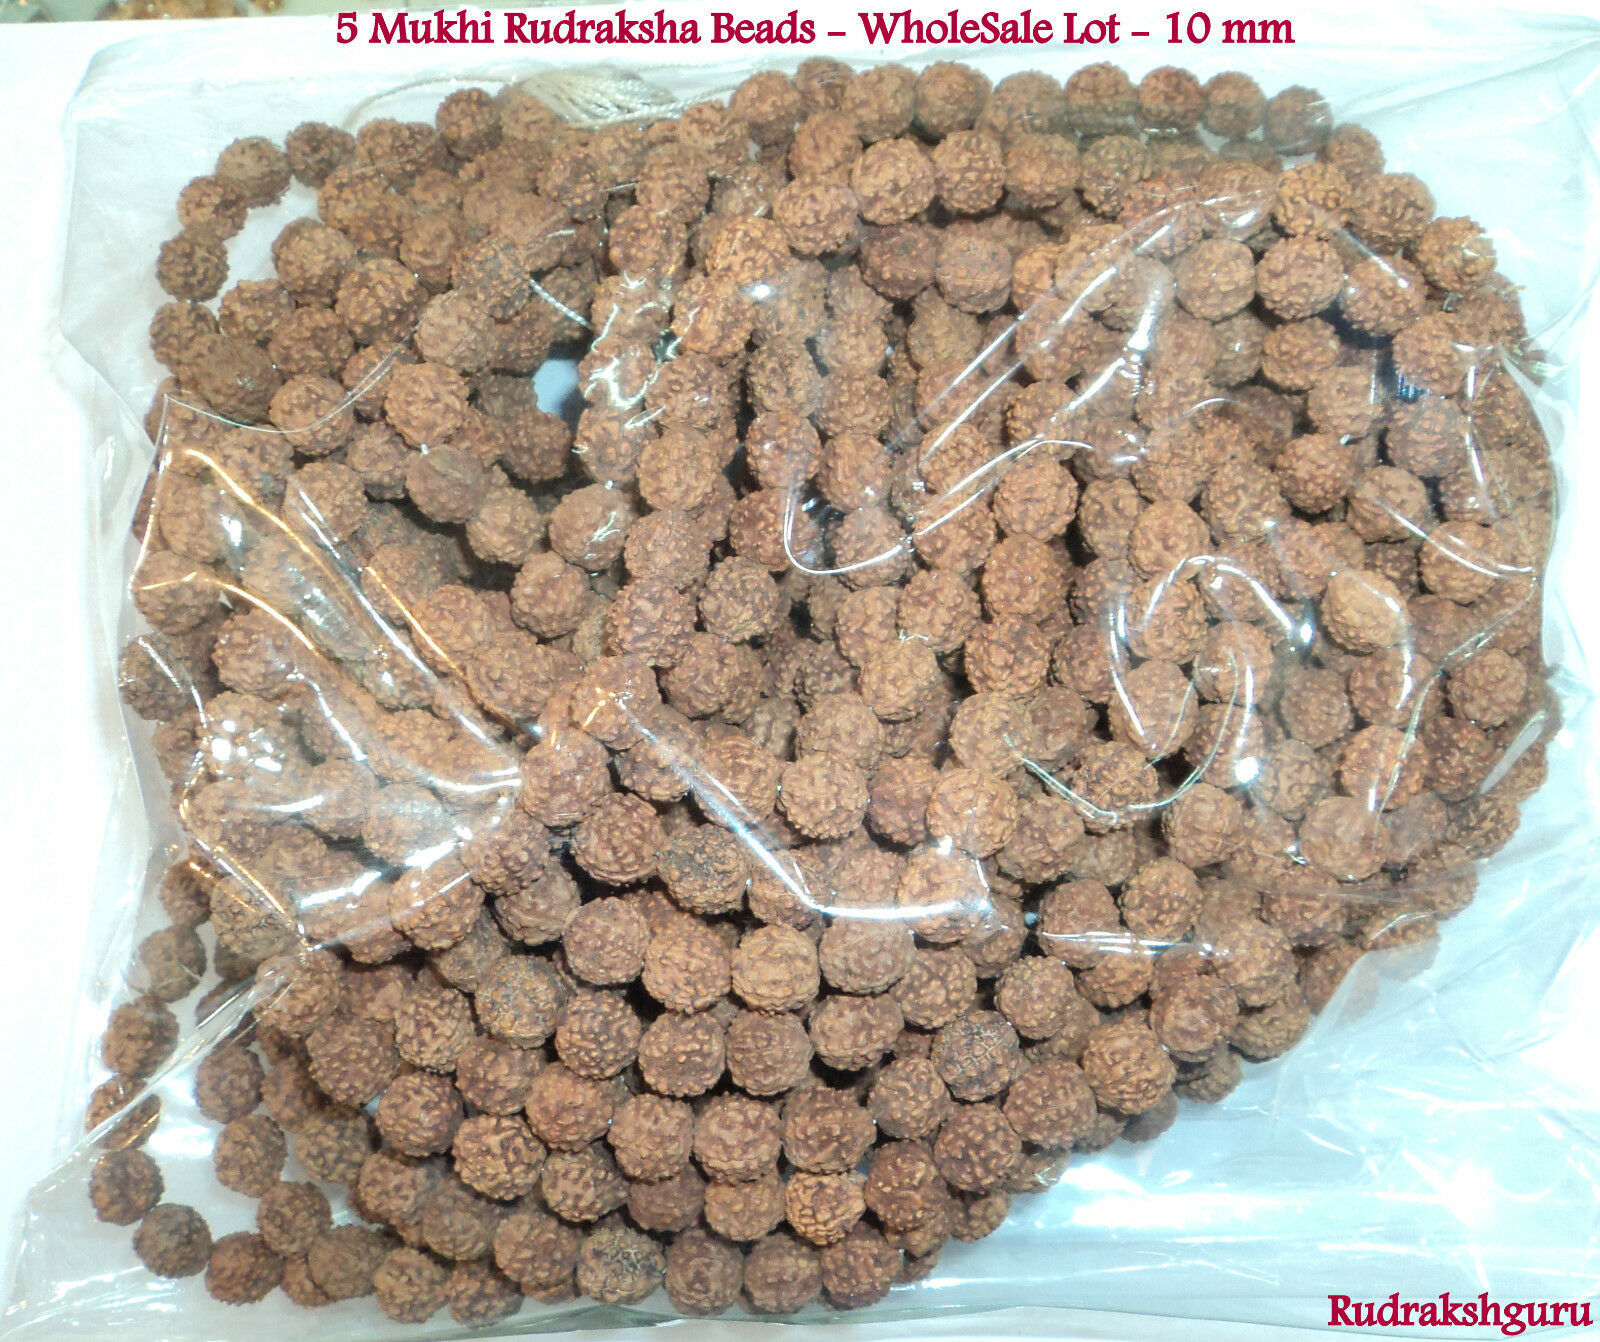 Primary image for 5 Mukhi Rudraksha / Five Face Rudraksh - Wholesale Lots - 10 mm